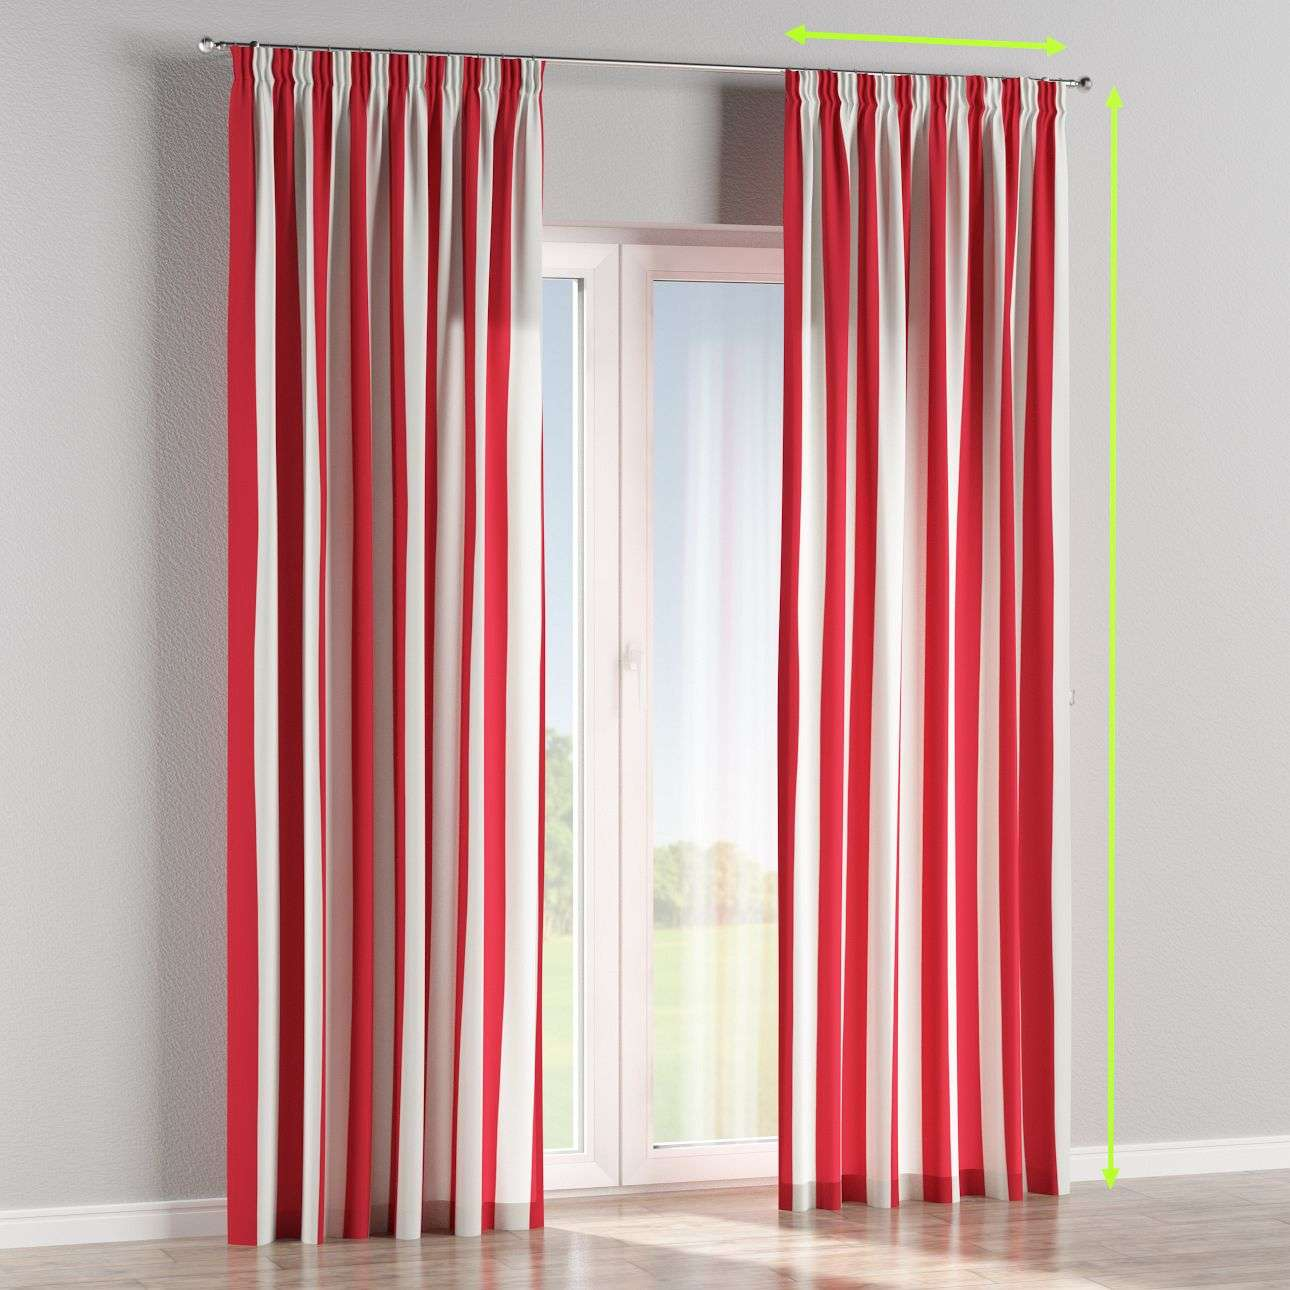 Pencil pleat lined curtains in collection Comic Book & Geo Prints, fabric: 137-54